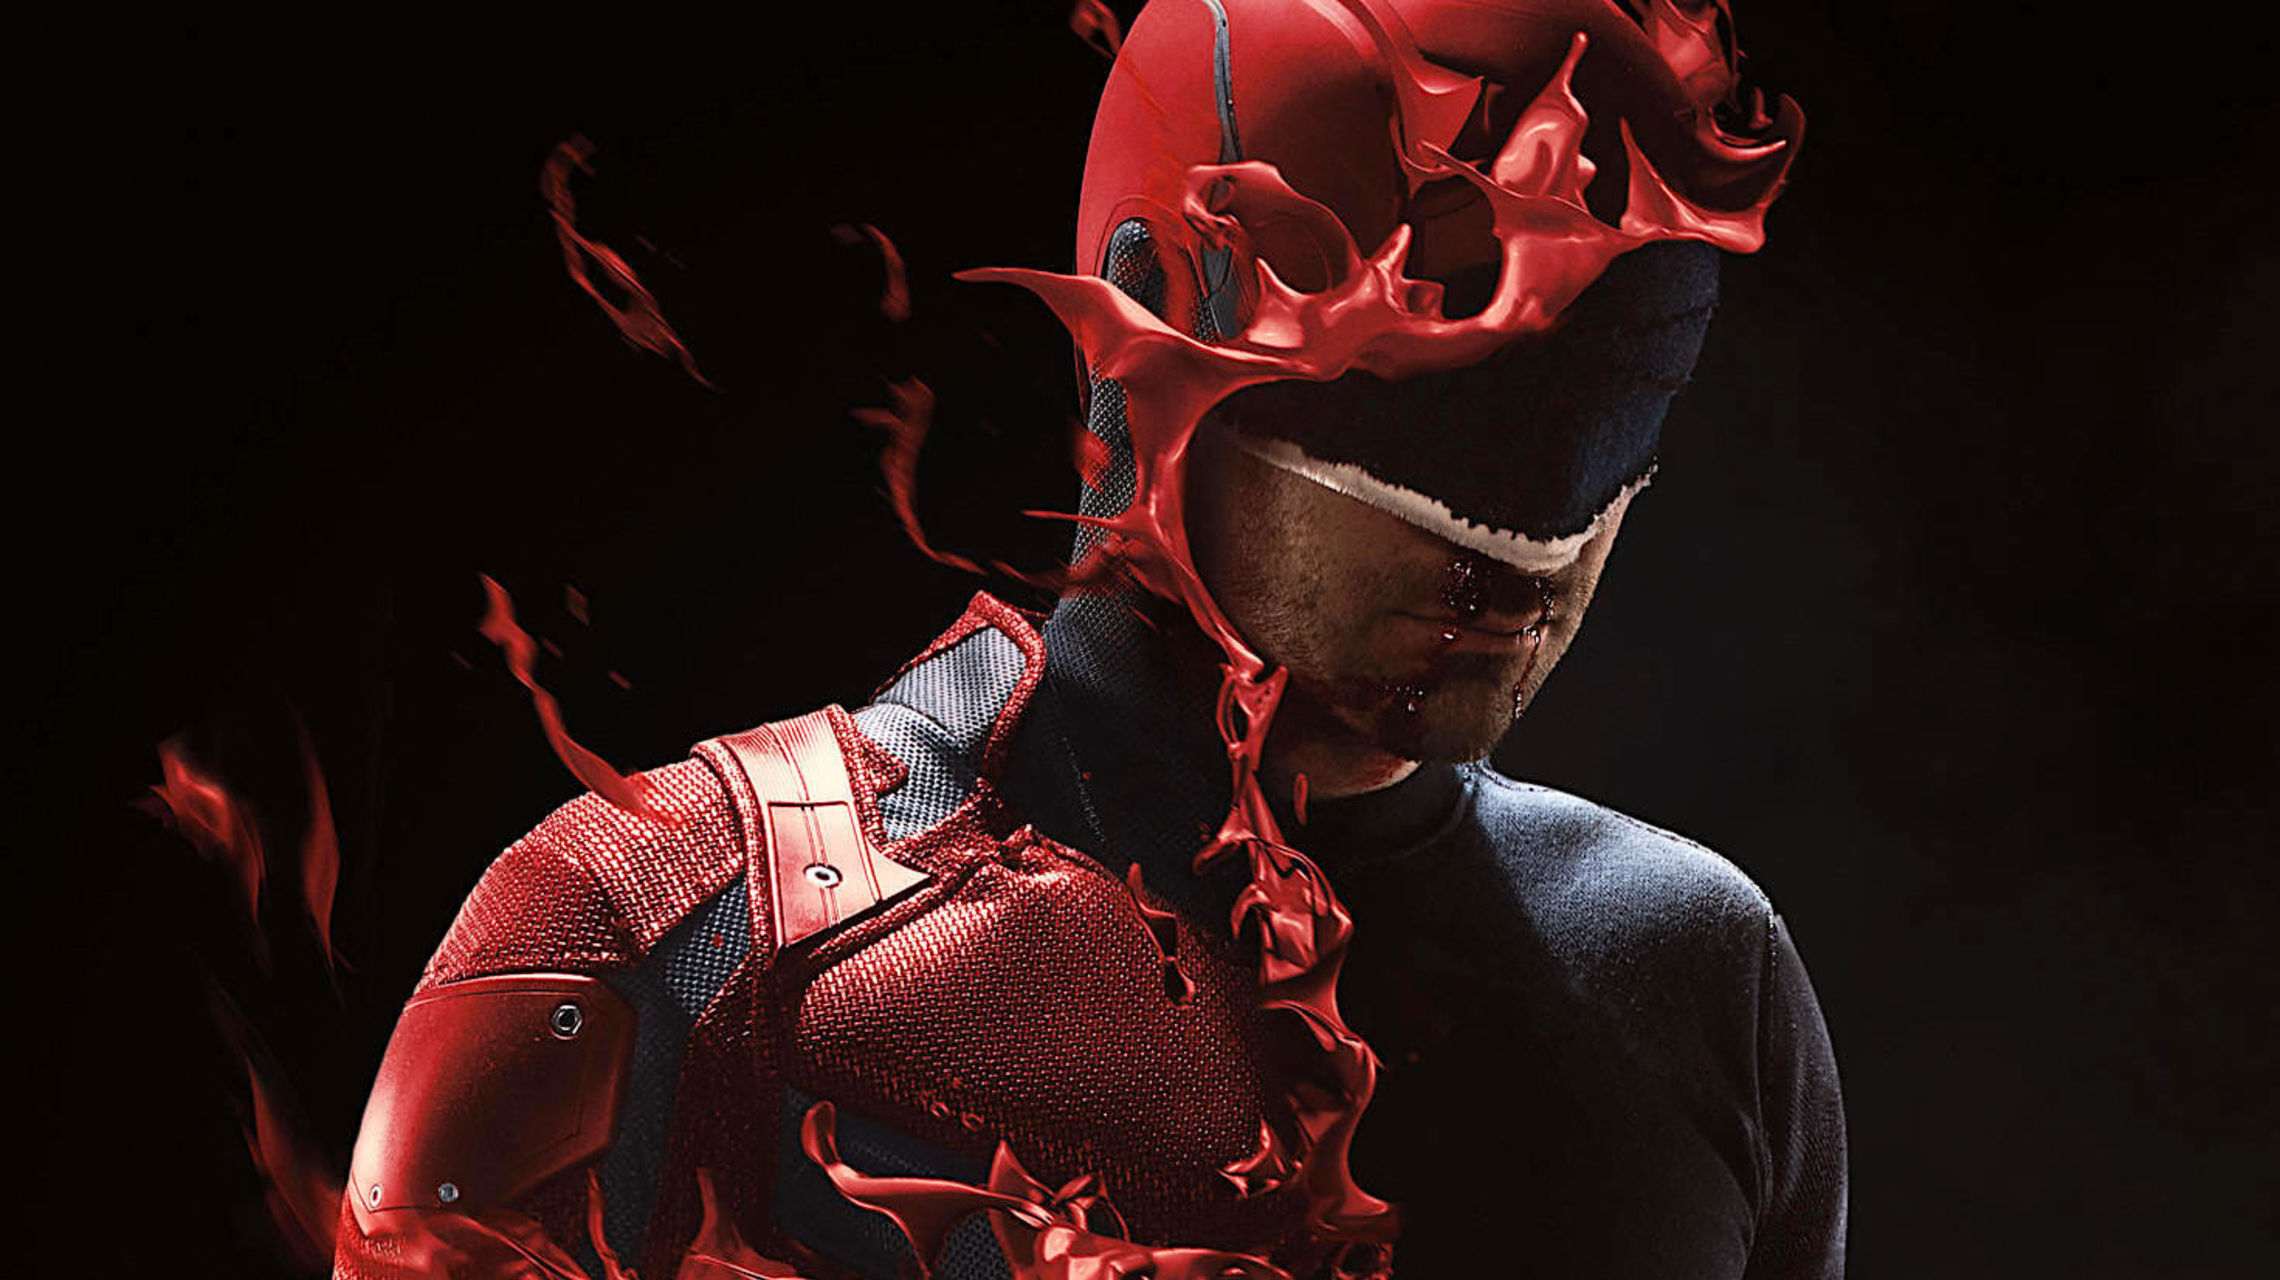 SAVE DAREDEVIL FAN CAMPAIGN PURCHASES SOME VERY PRICEY BILLBOARD SPACE - by christian long, syfy wire